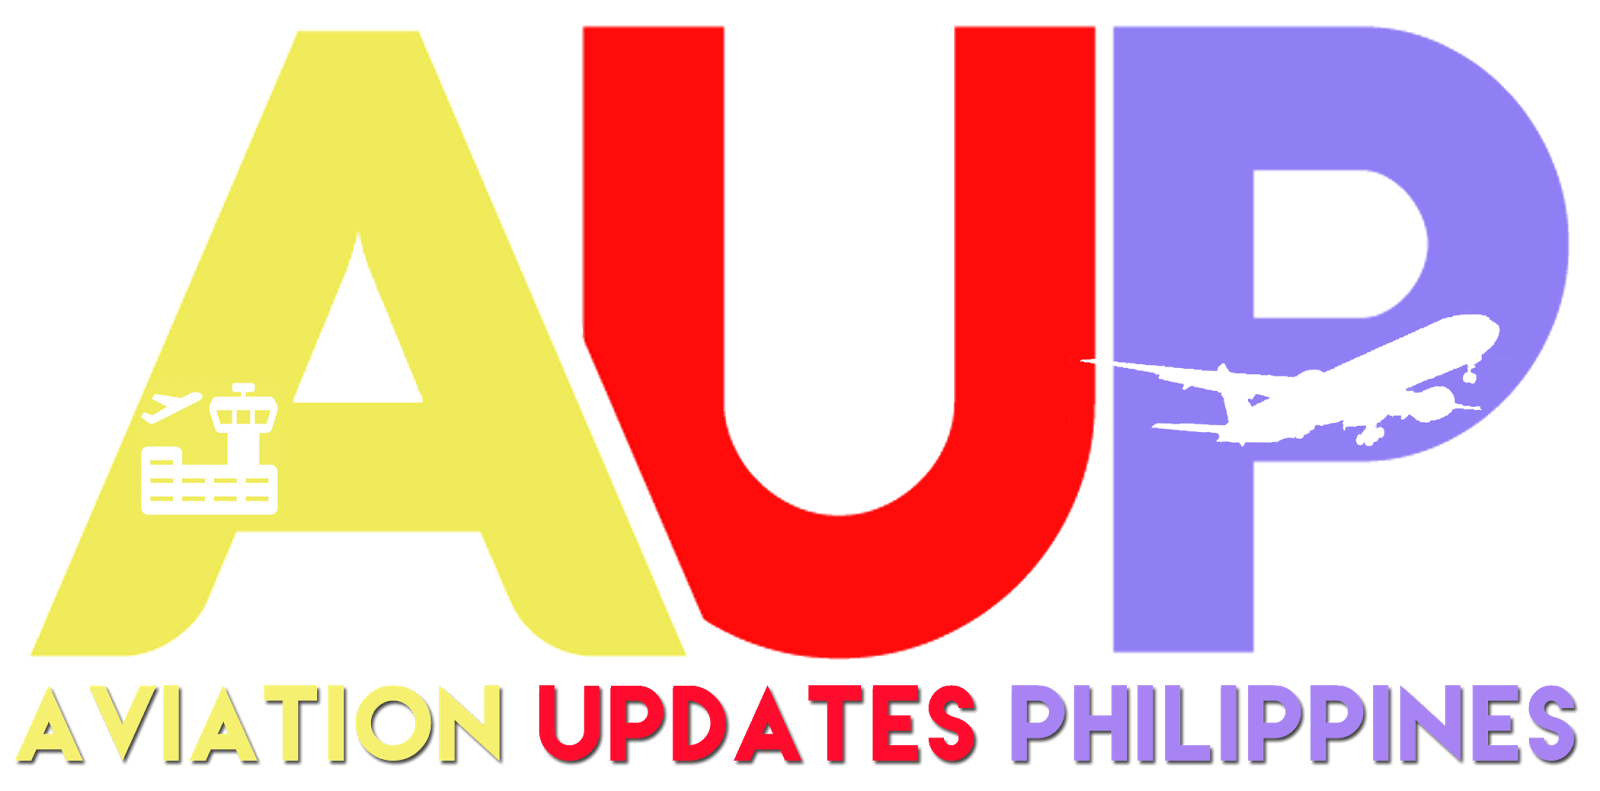 Aviation Updates Philippines